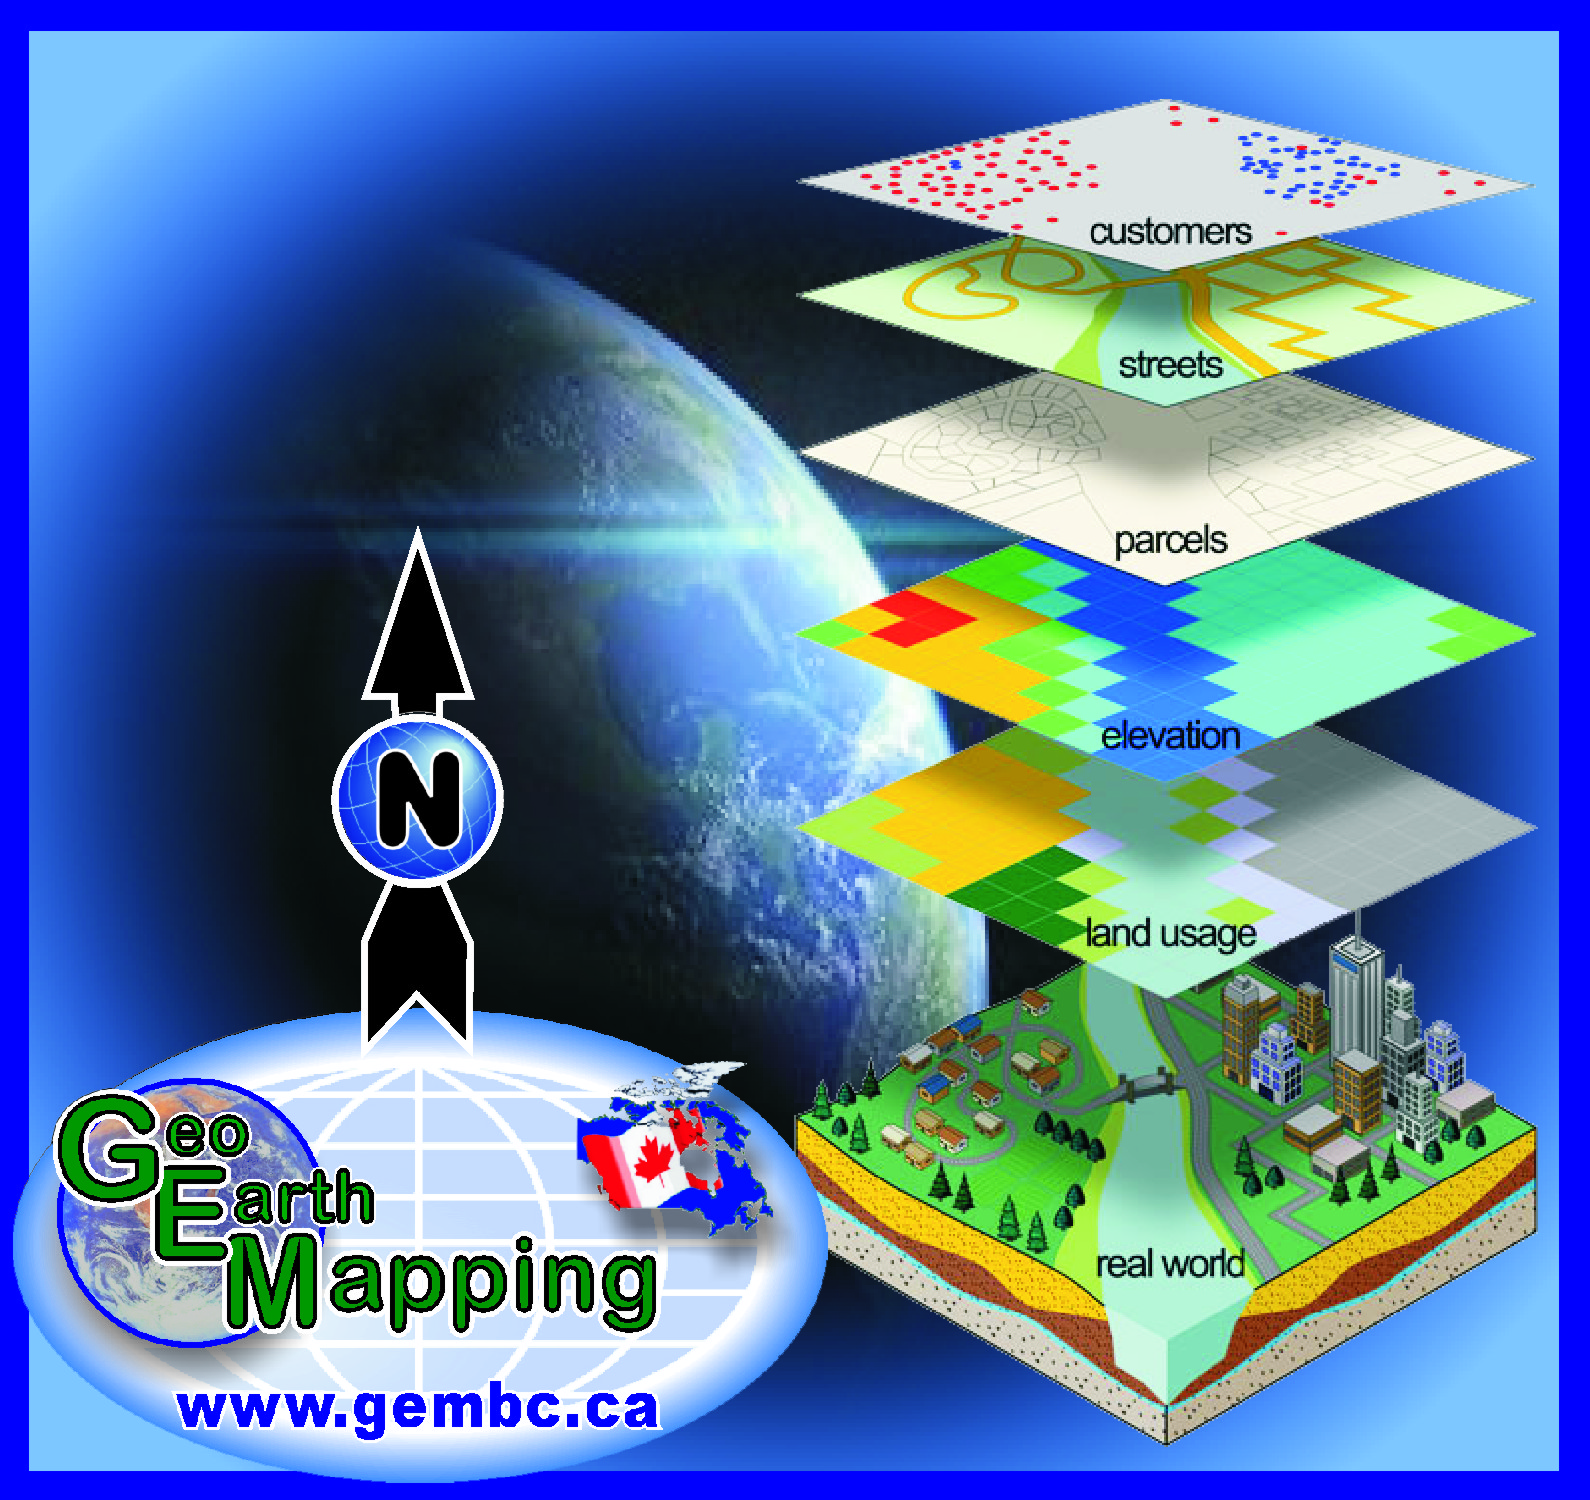 Geo Earth Mapping image 1